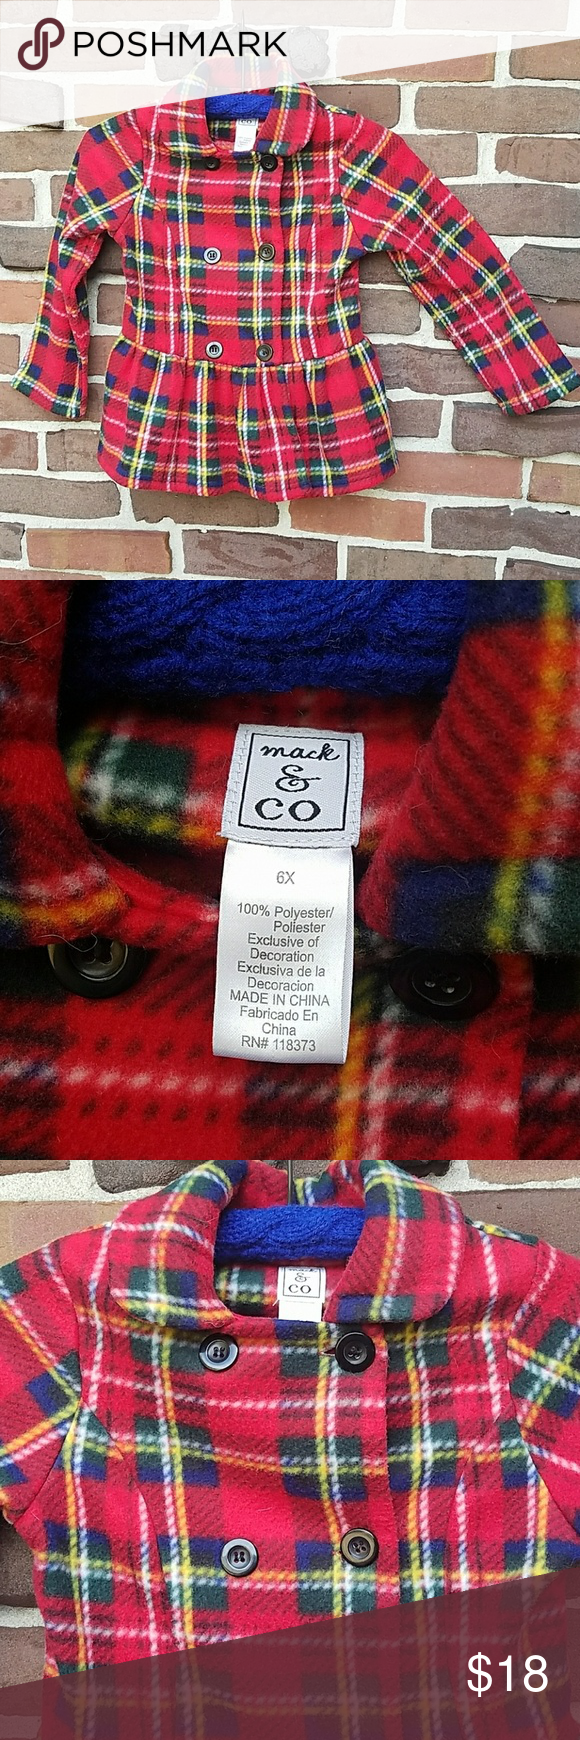 Adorable tartan plaid fleece jacket peacoat tartan plaid tartan